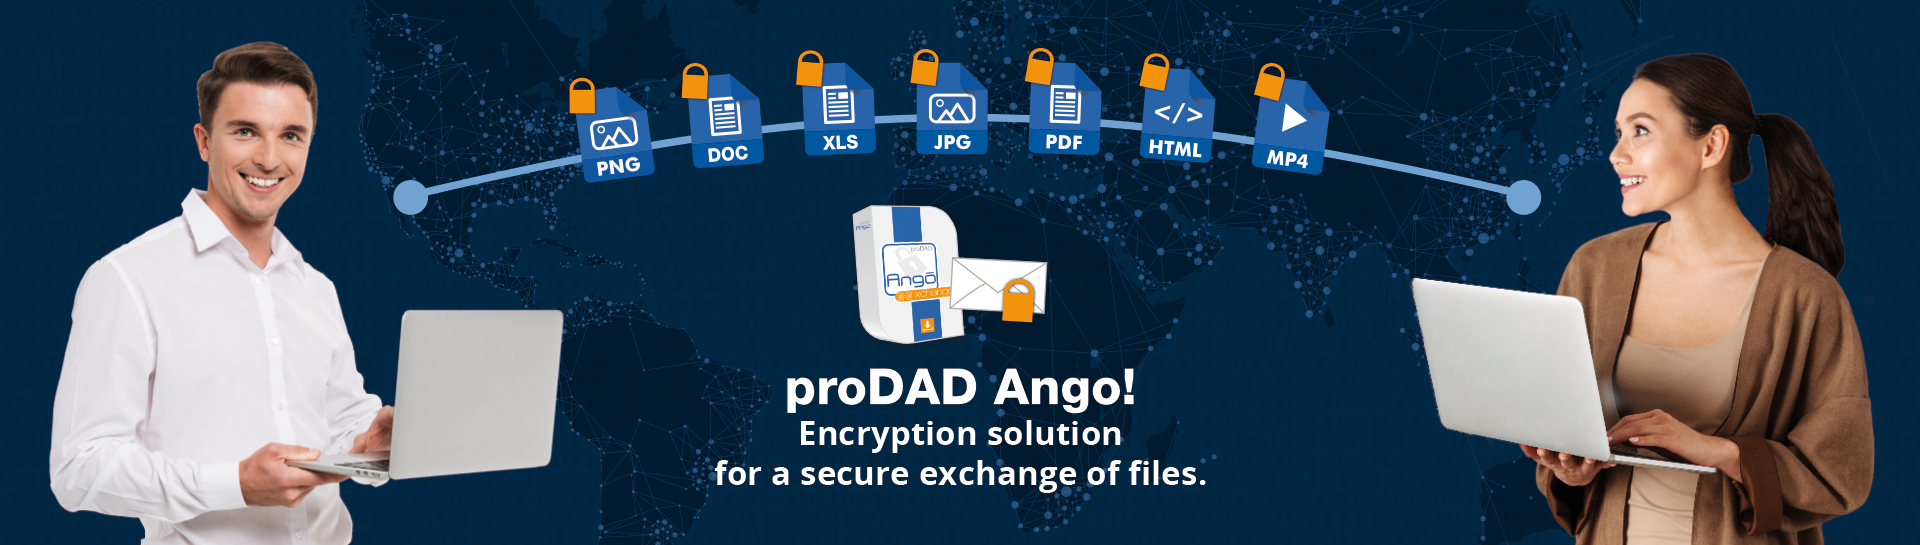 proDAD Ango - Encrypting solution for a secure exchange of files